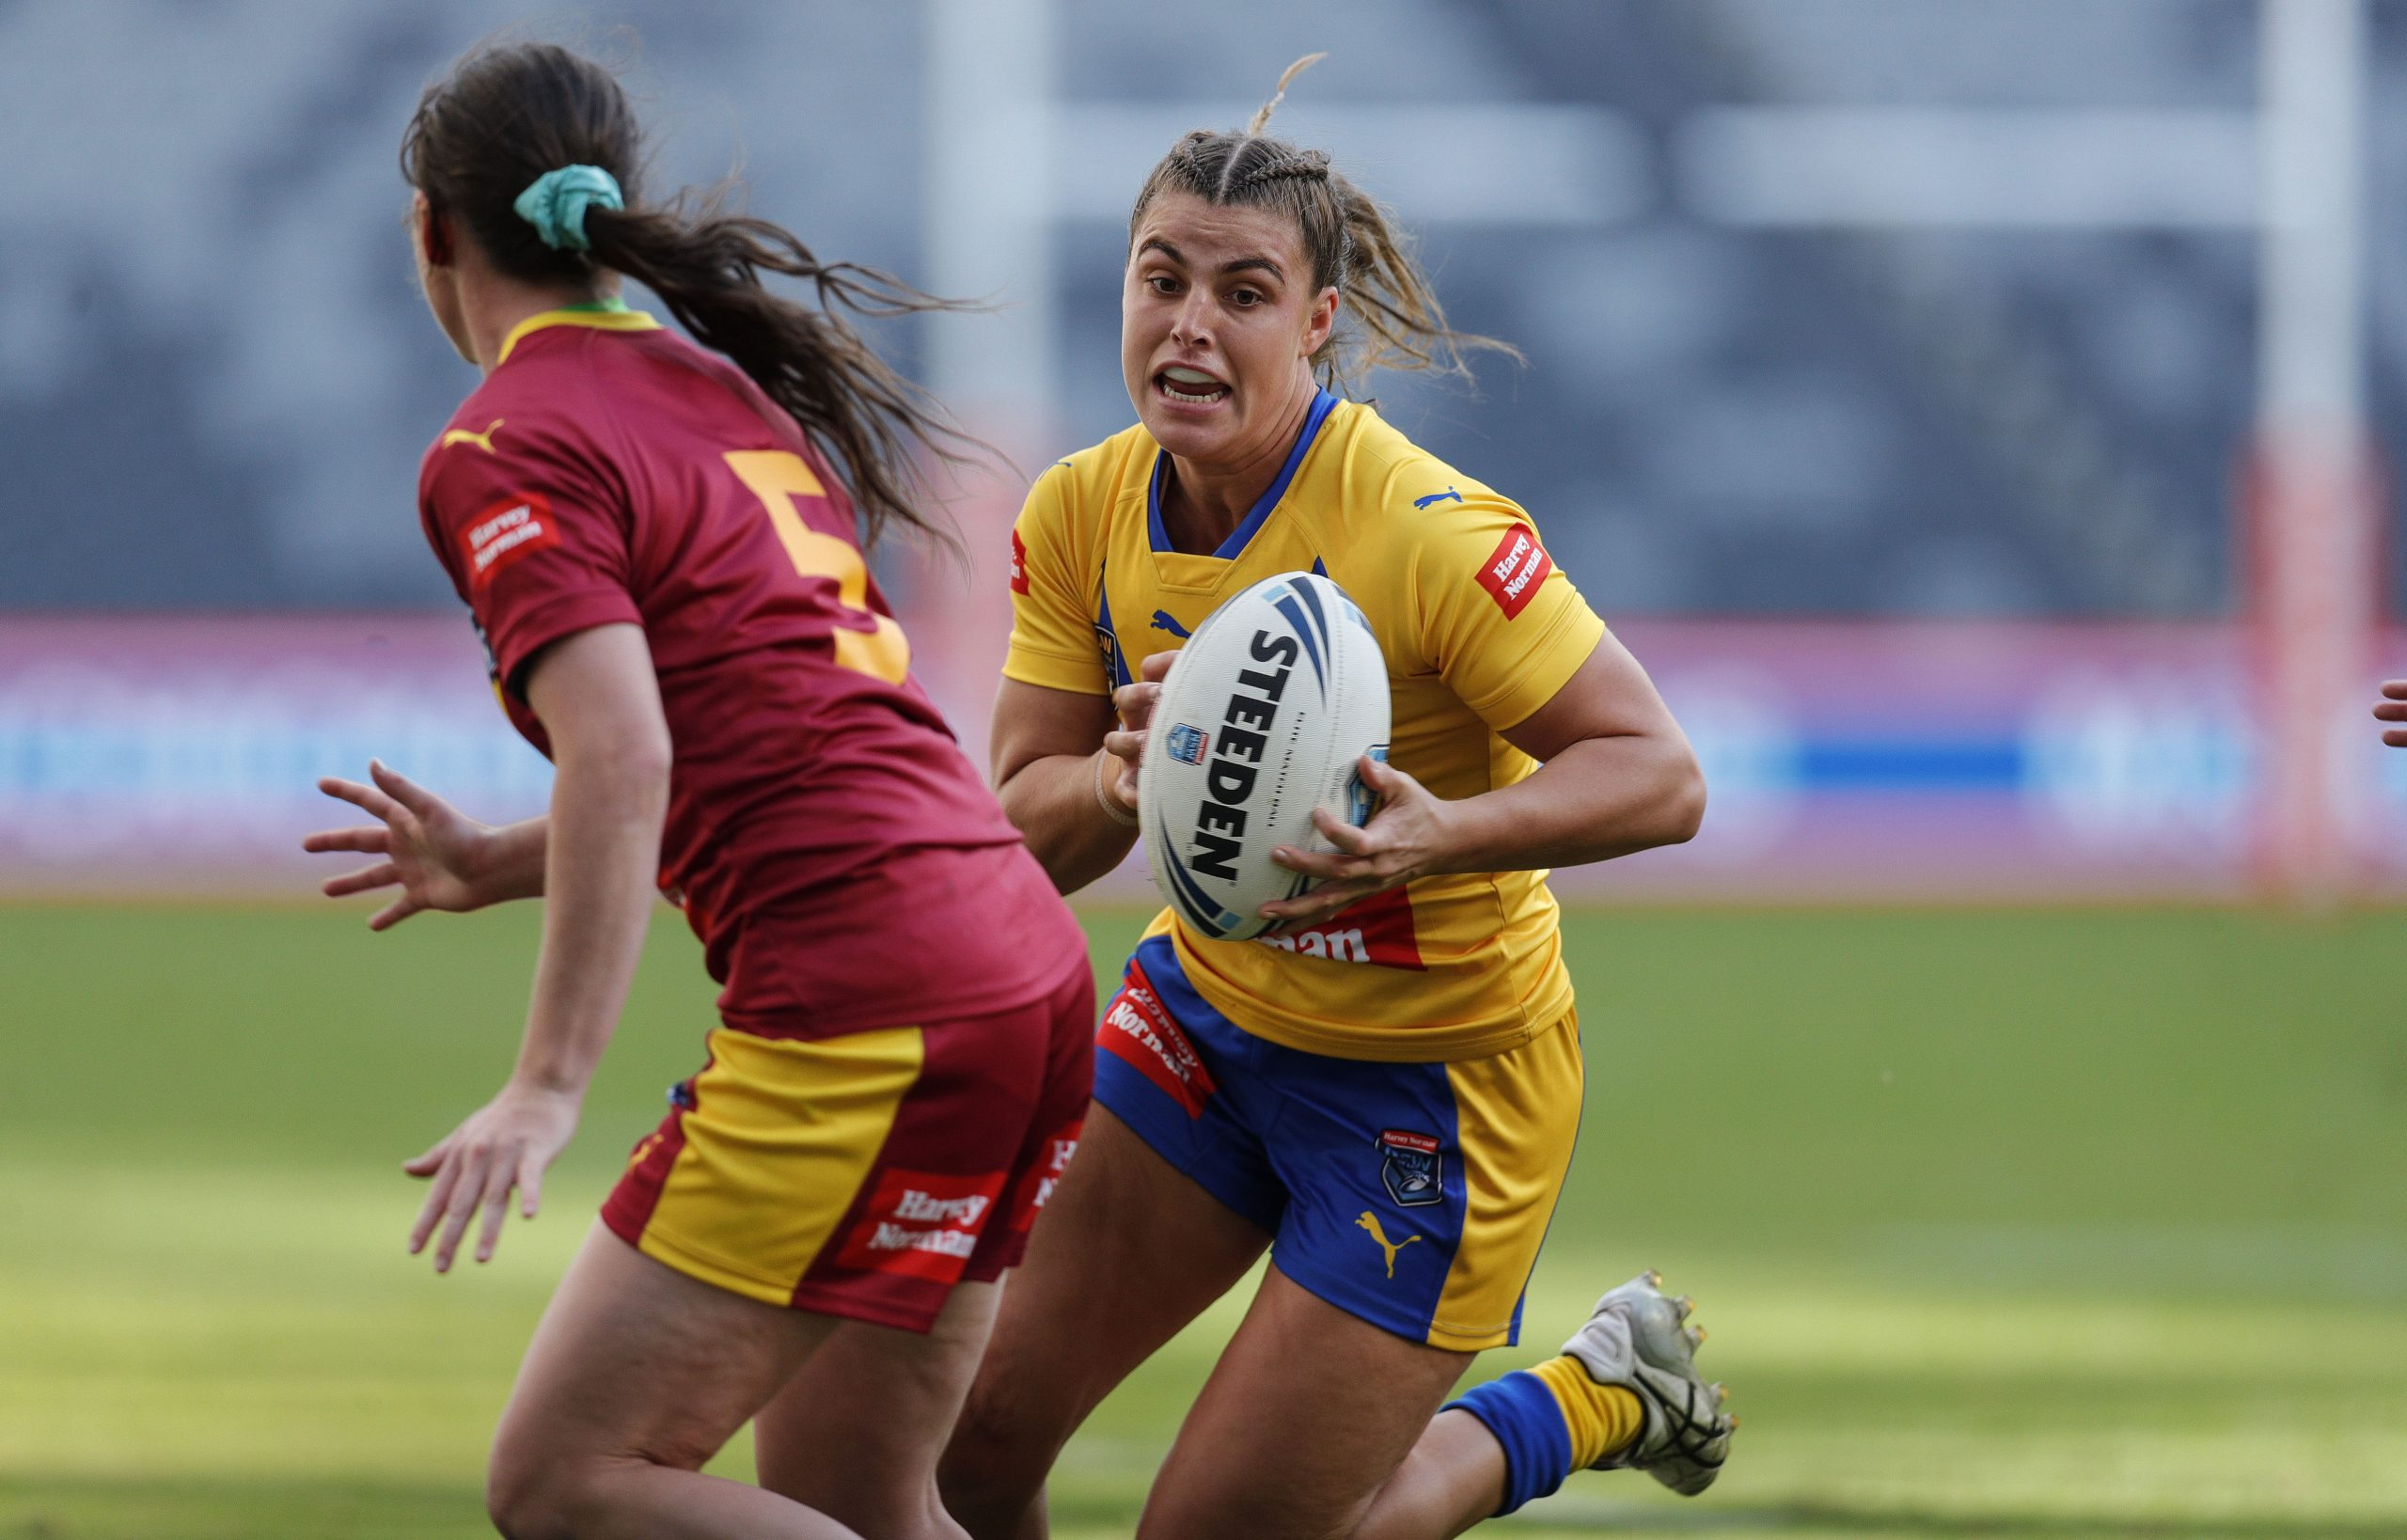 Jess Sergis leads NSW City to victory over Country